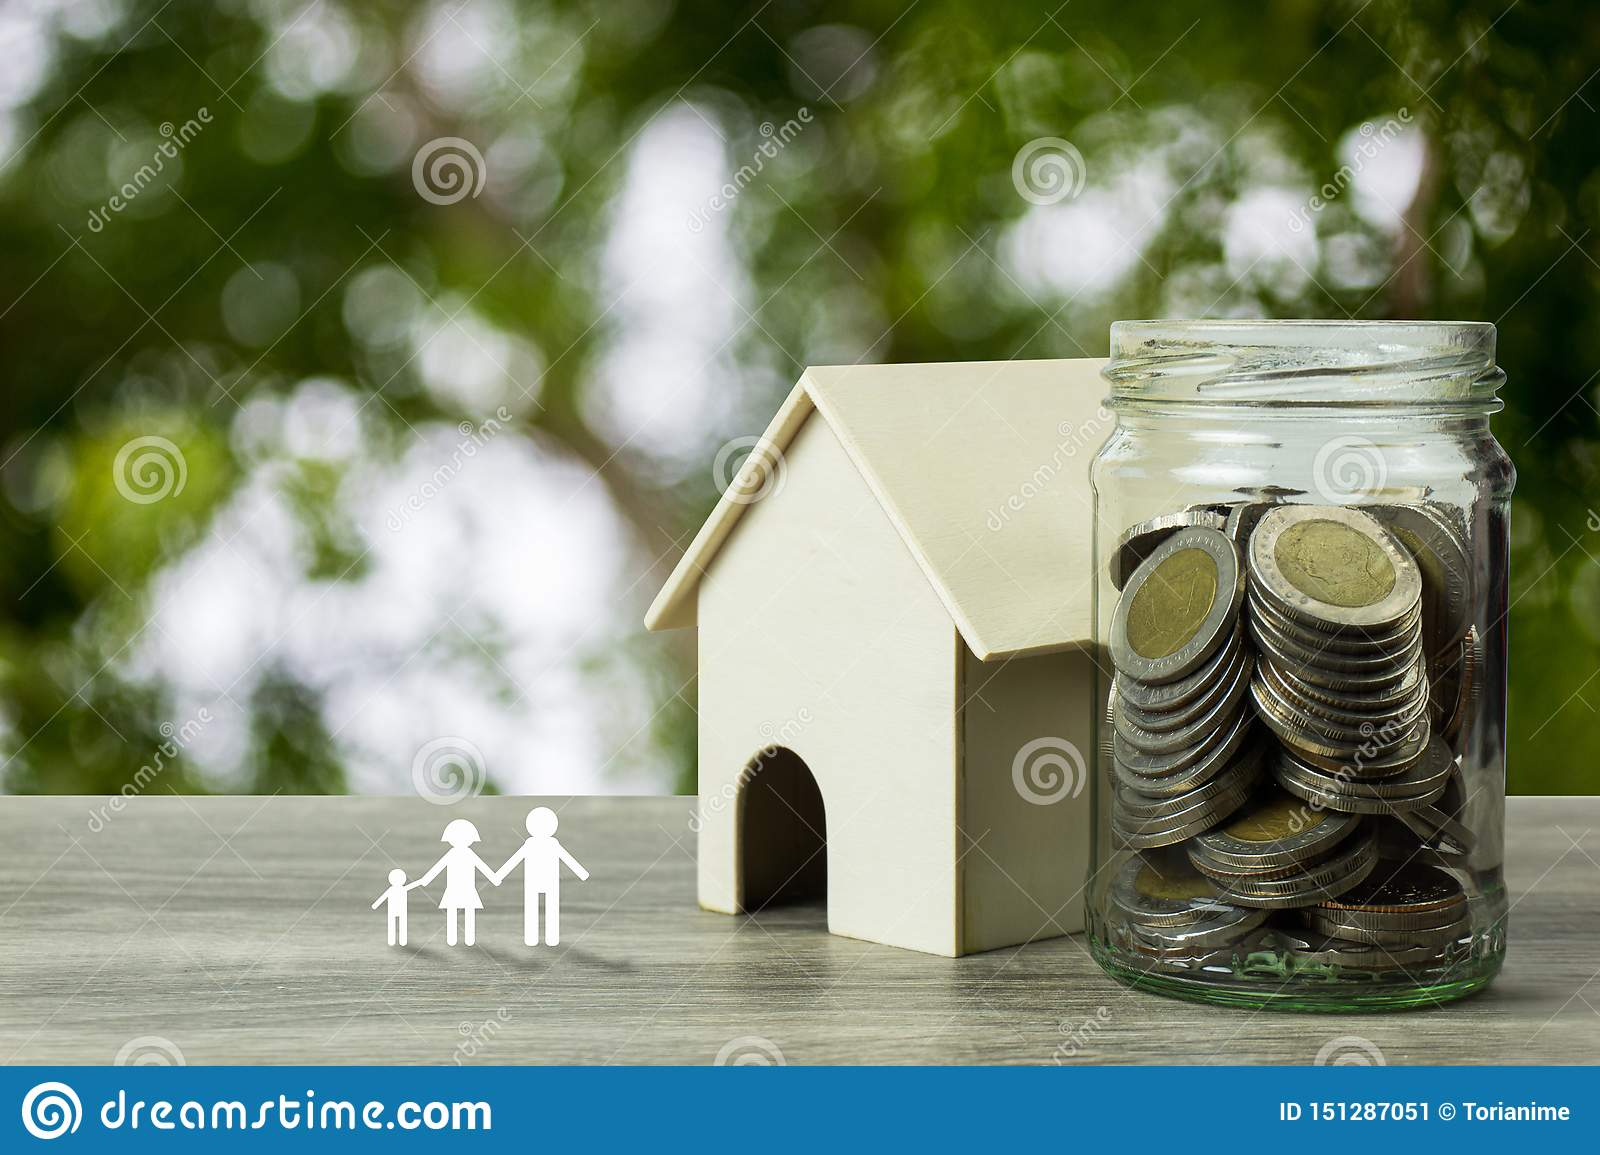 Business and financial property concept for home loan, mortgage, saving and investment. A small house model with stack of coins in